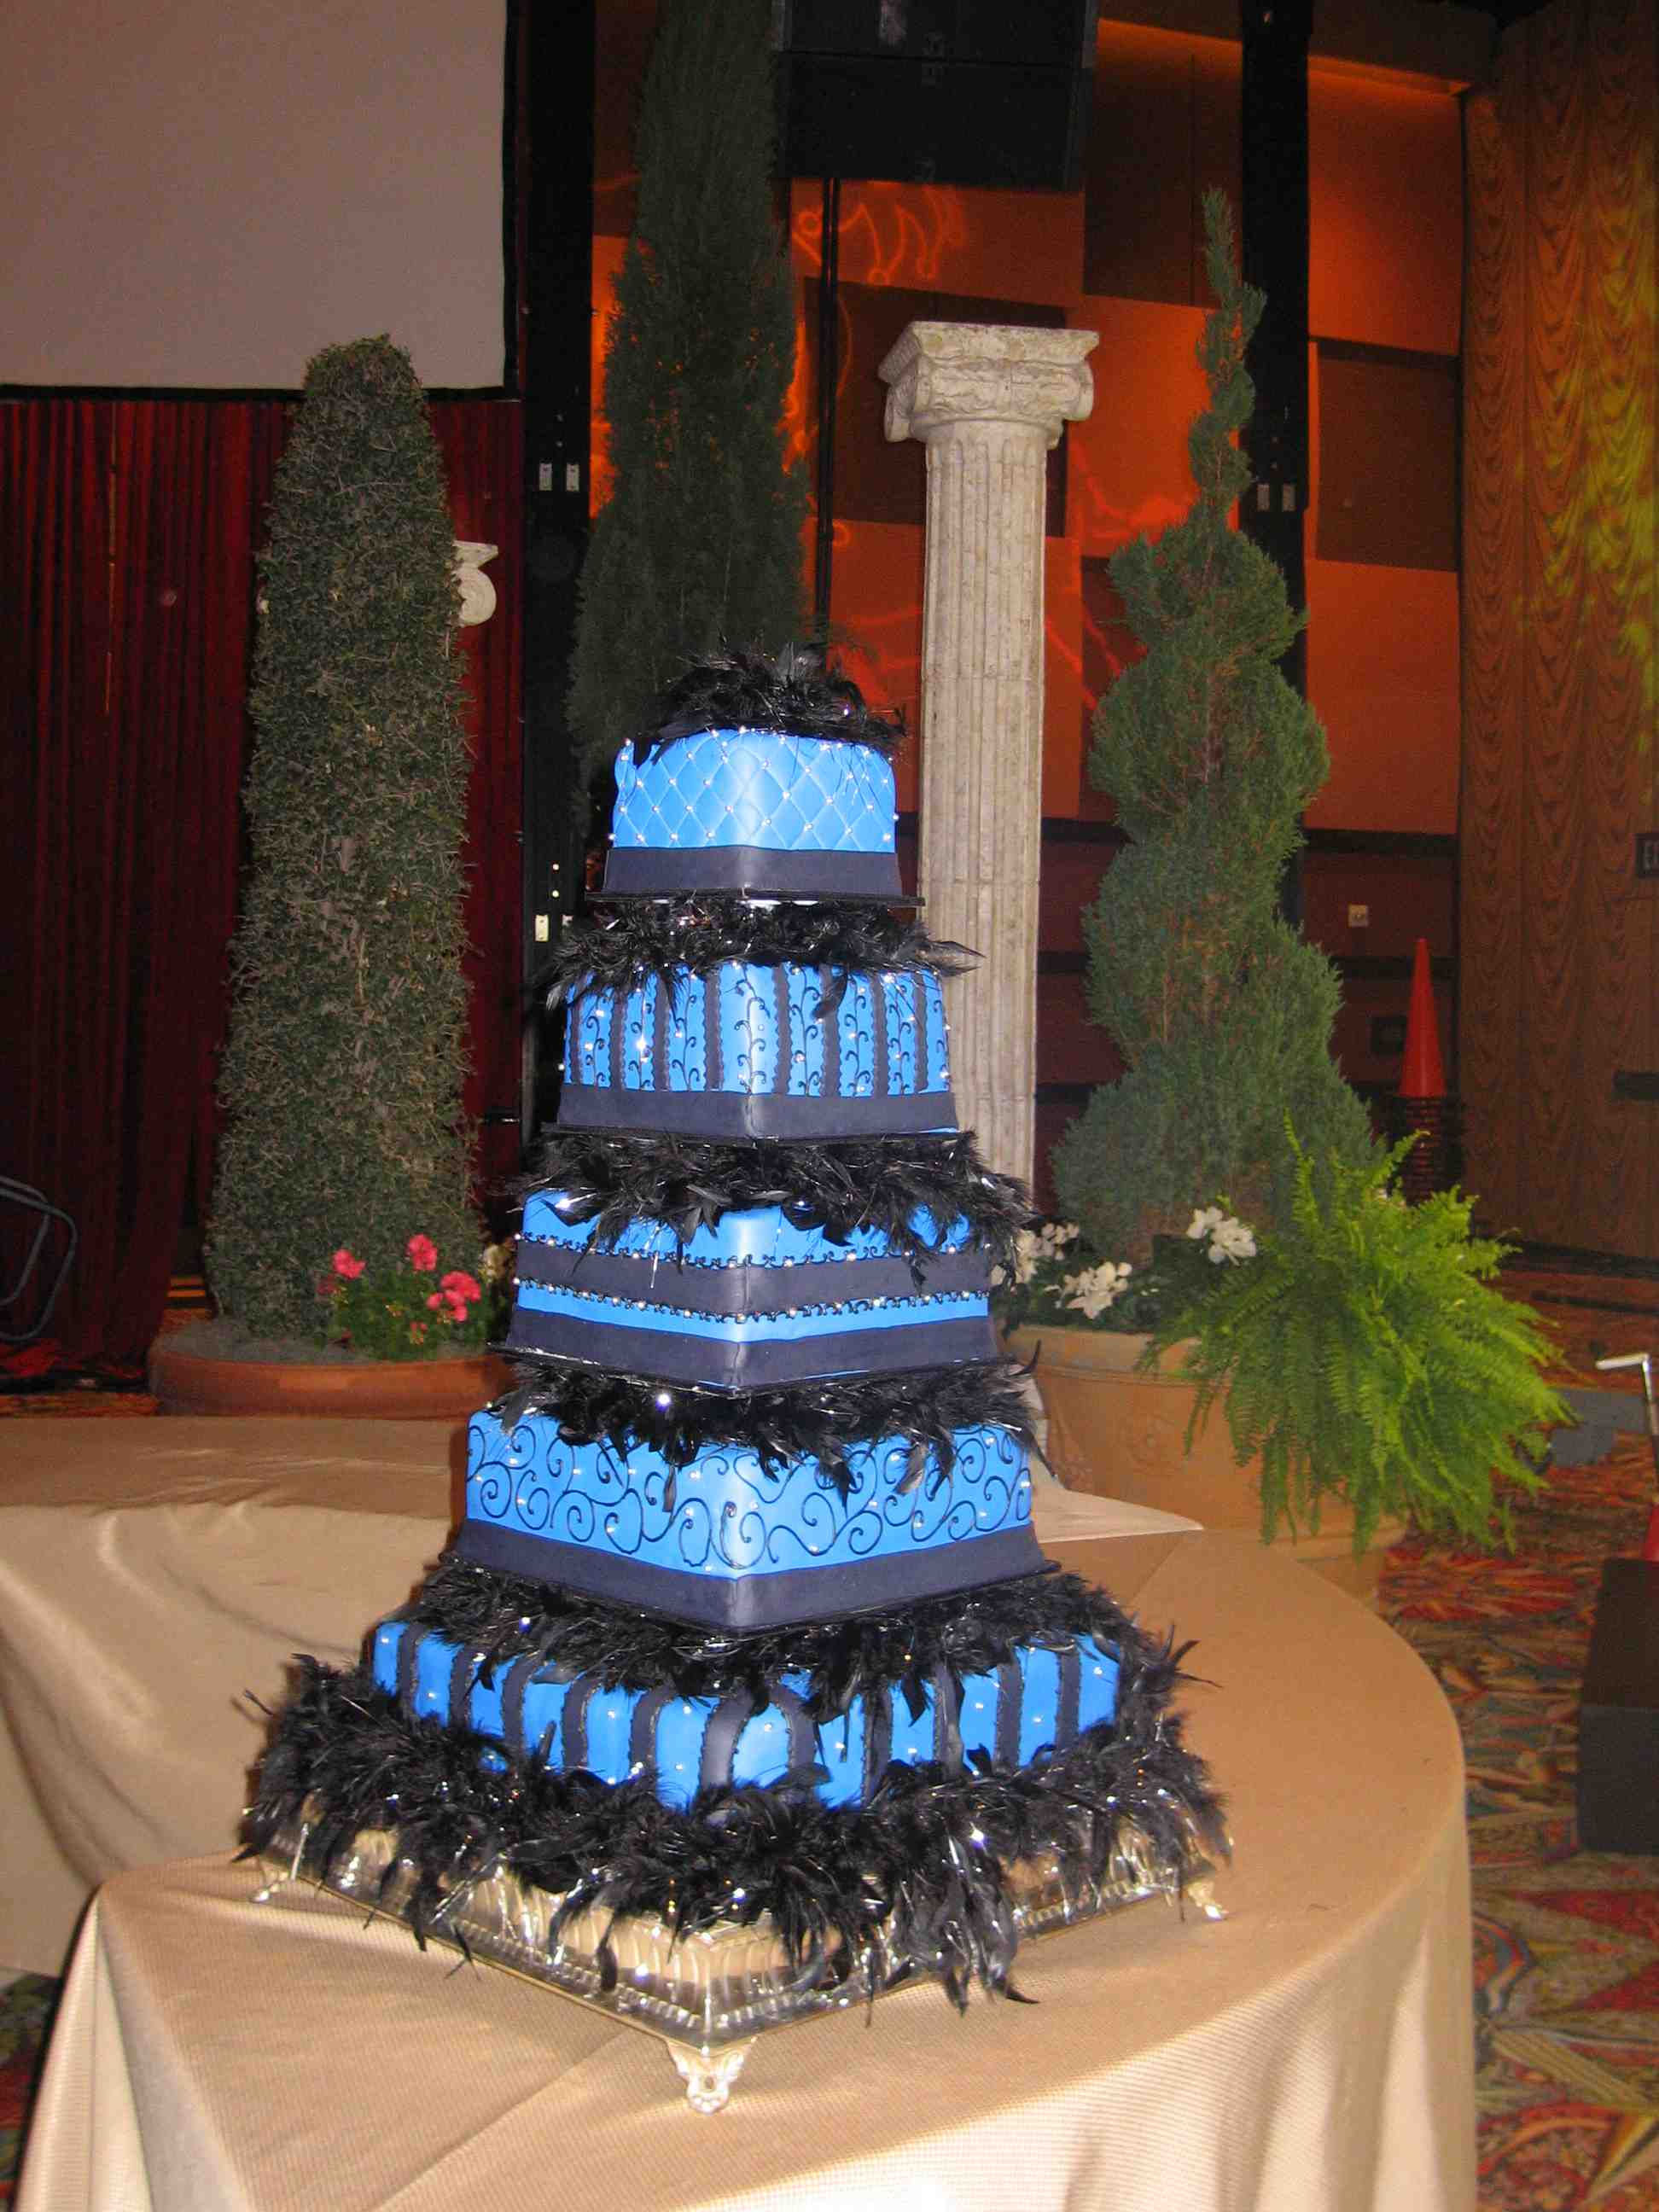 Who Made the Cake  Wedding and Quinceanera Cakes in Houston TX  My Houston Quinceanera